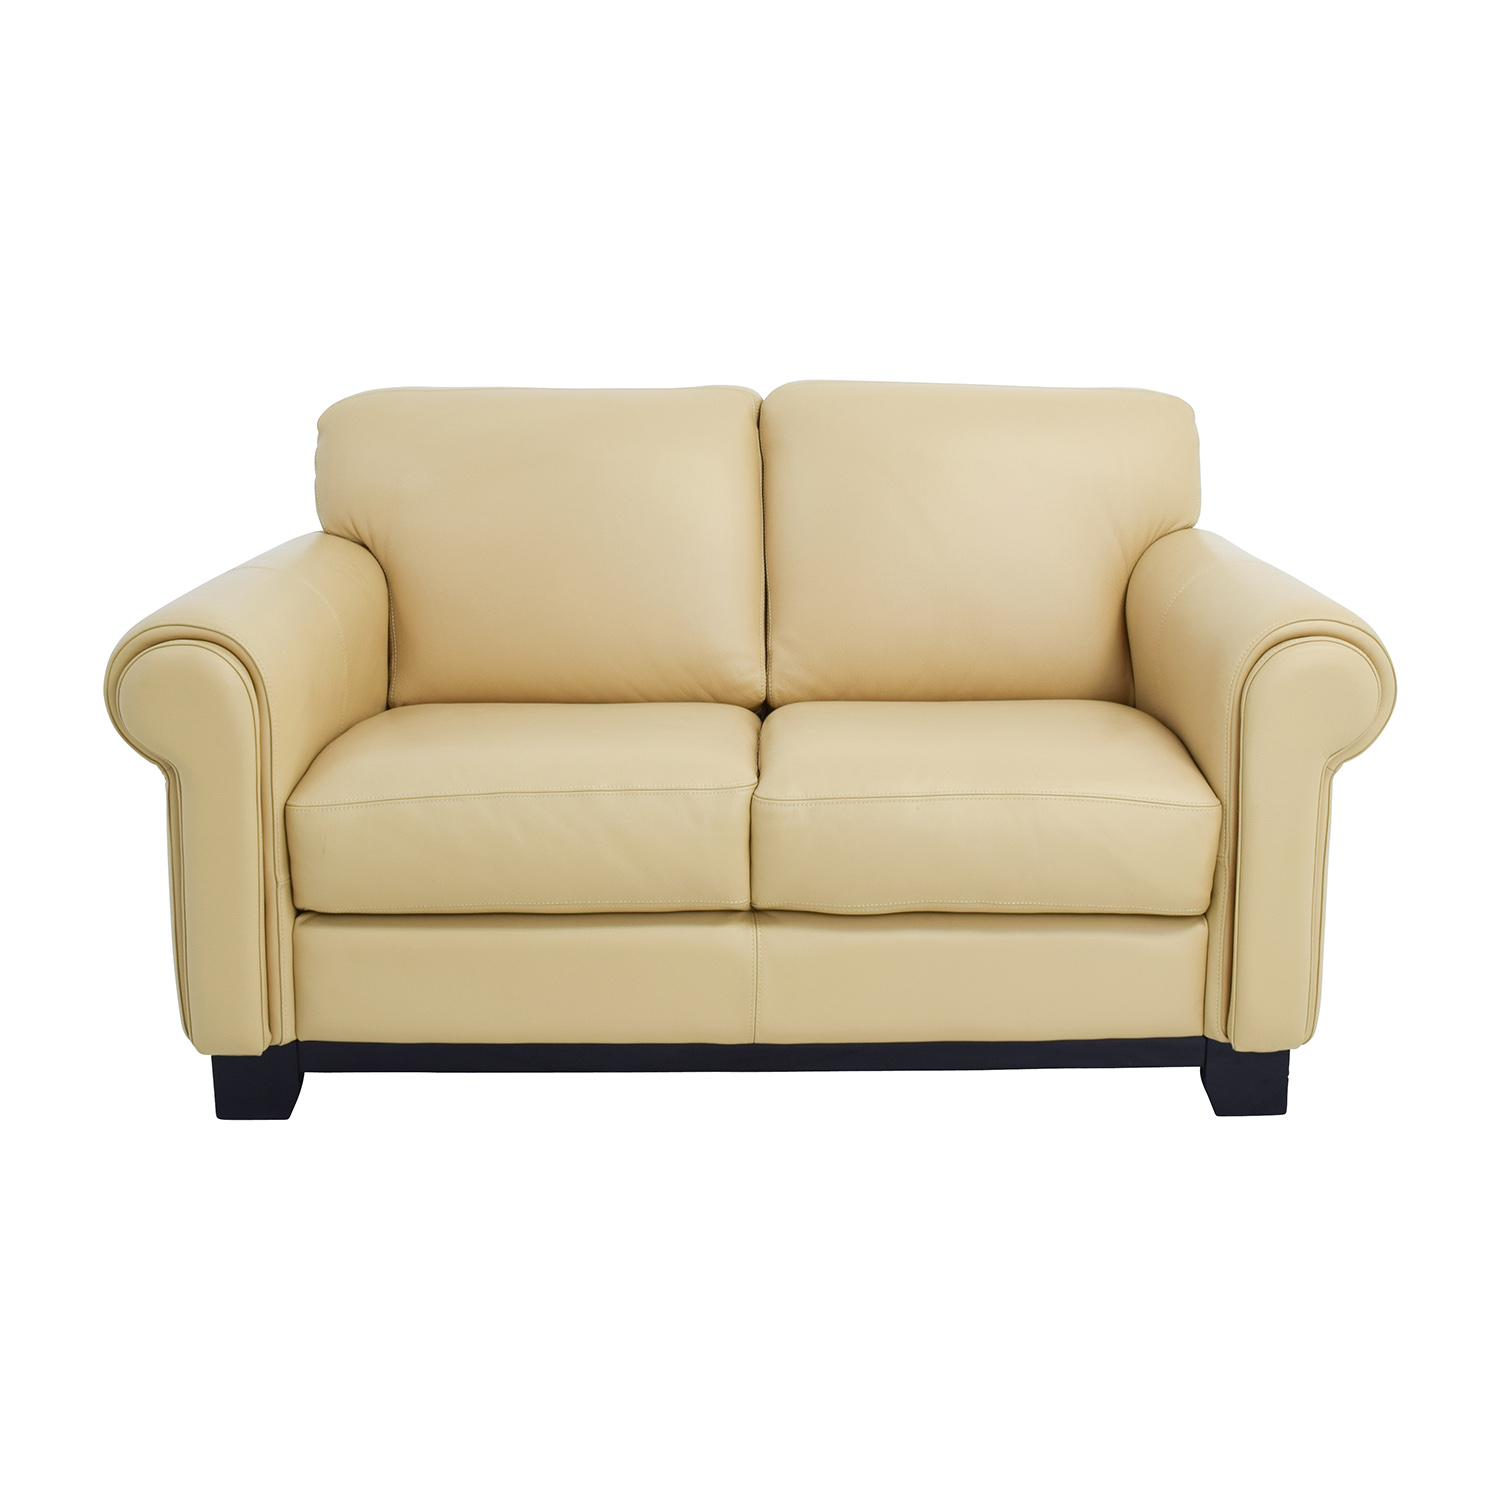 Chateau DAx Chateau DAx Beige Leather Two-seat Cushion Loveseat coupon